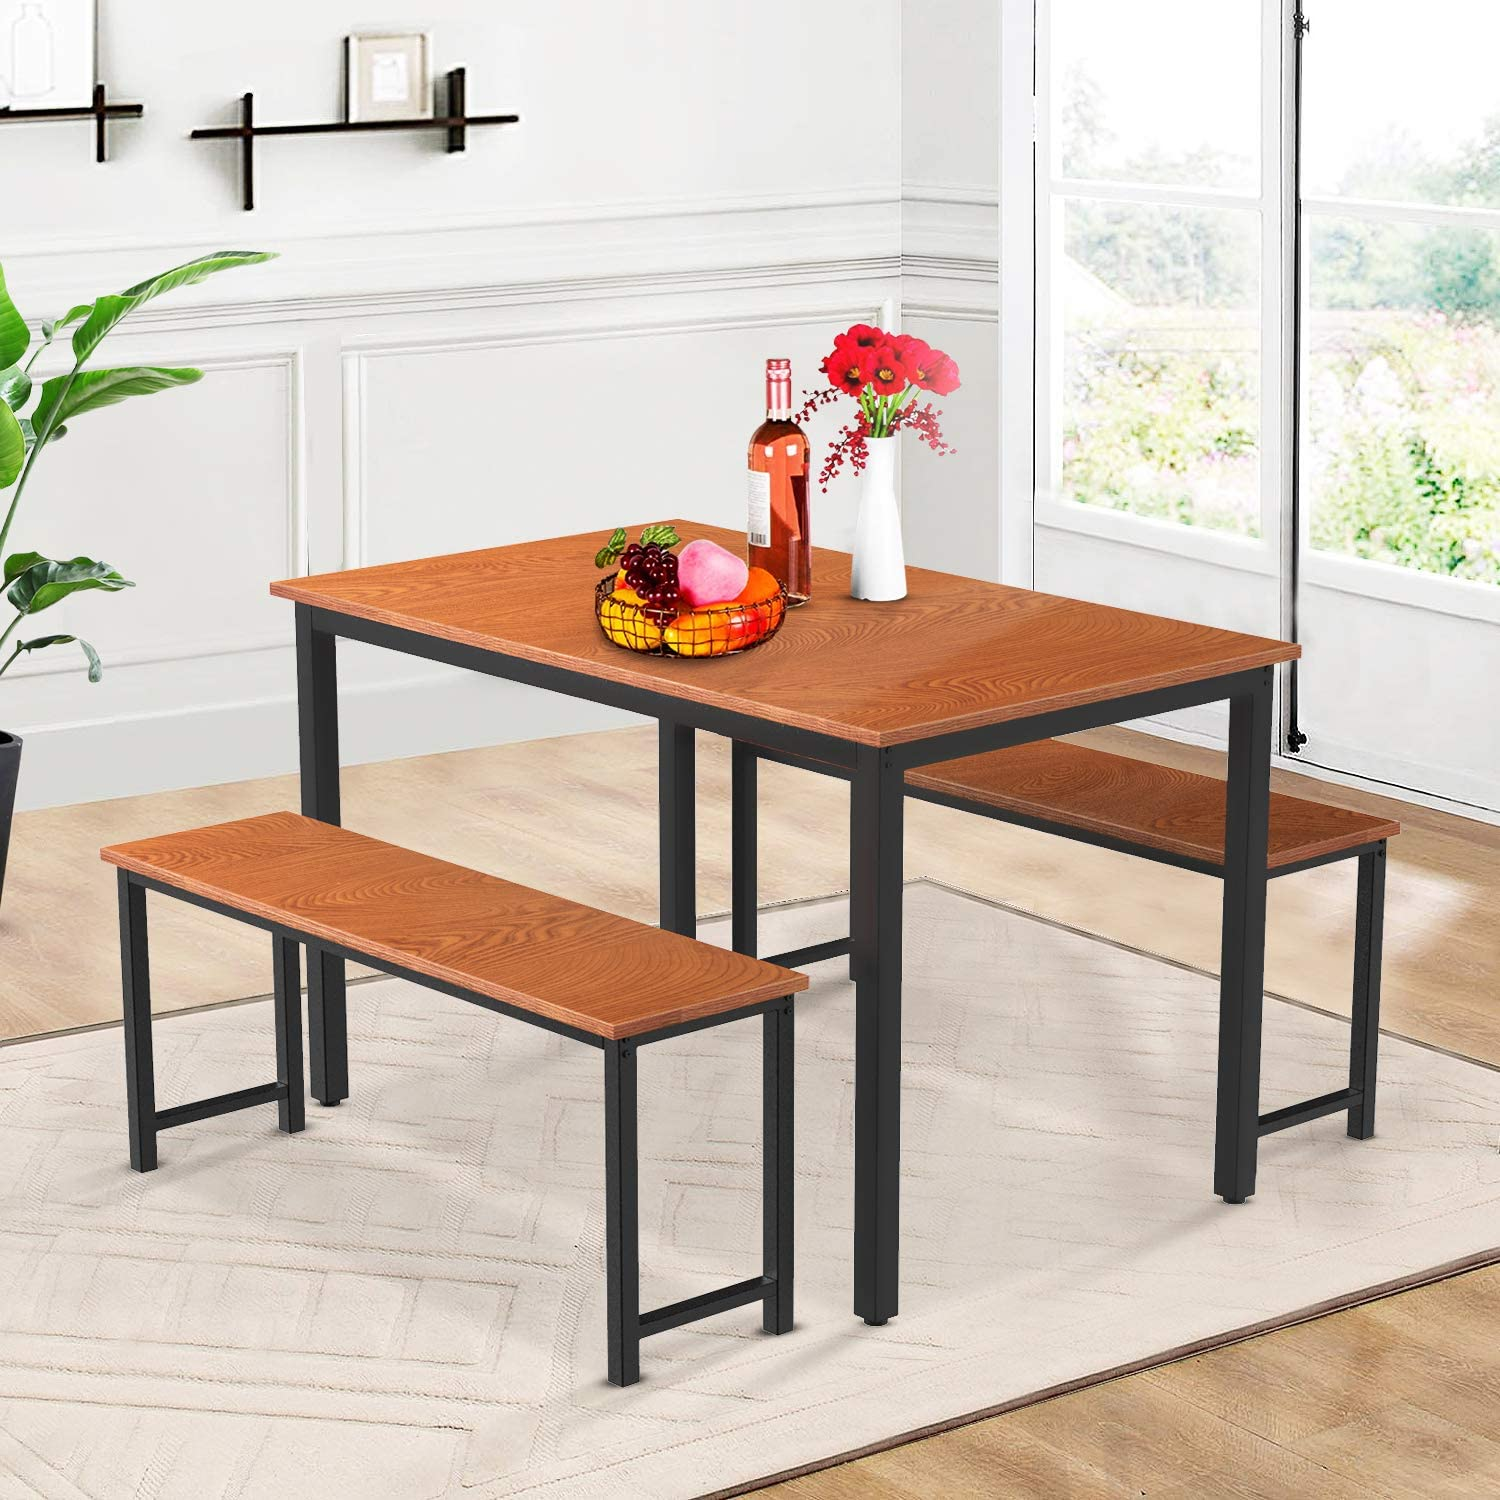 Pumpumly Dining Room 3 Pieces Set Kitchen Farmhouse with Table Albuquerque Los Angeles Mall Mall